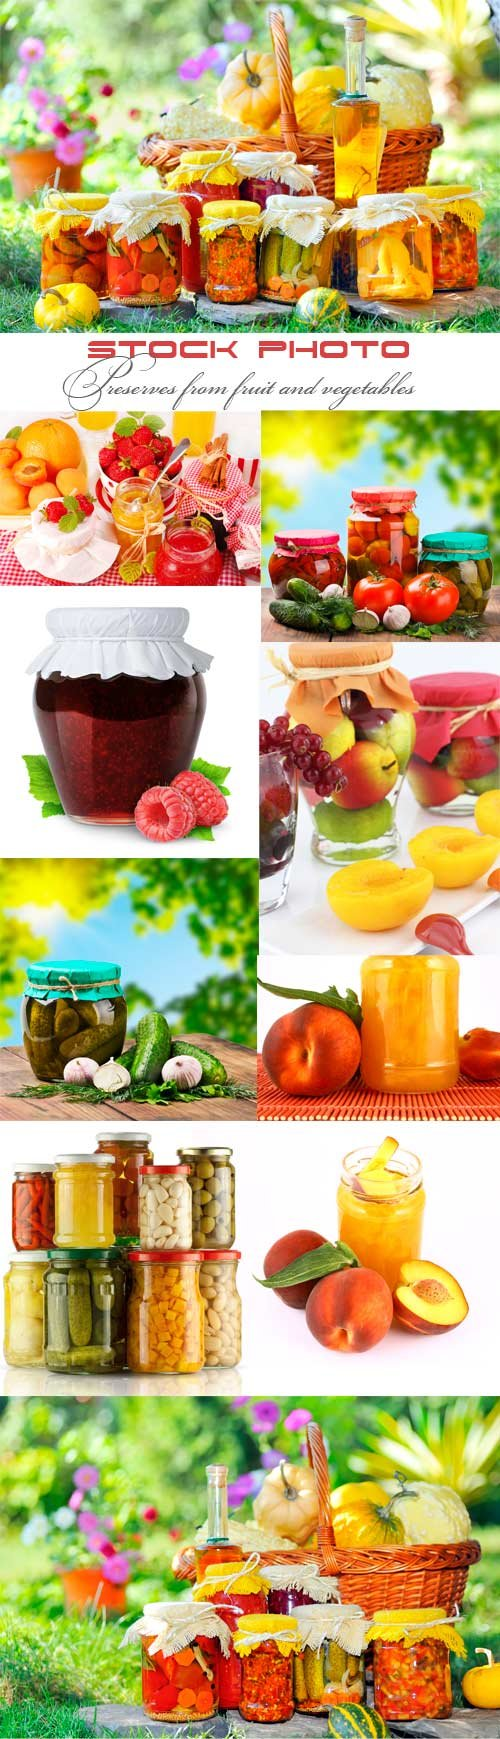 Preserves from fruit and vegetables